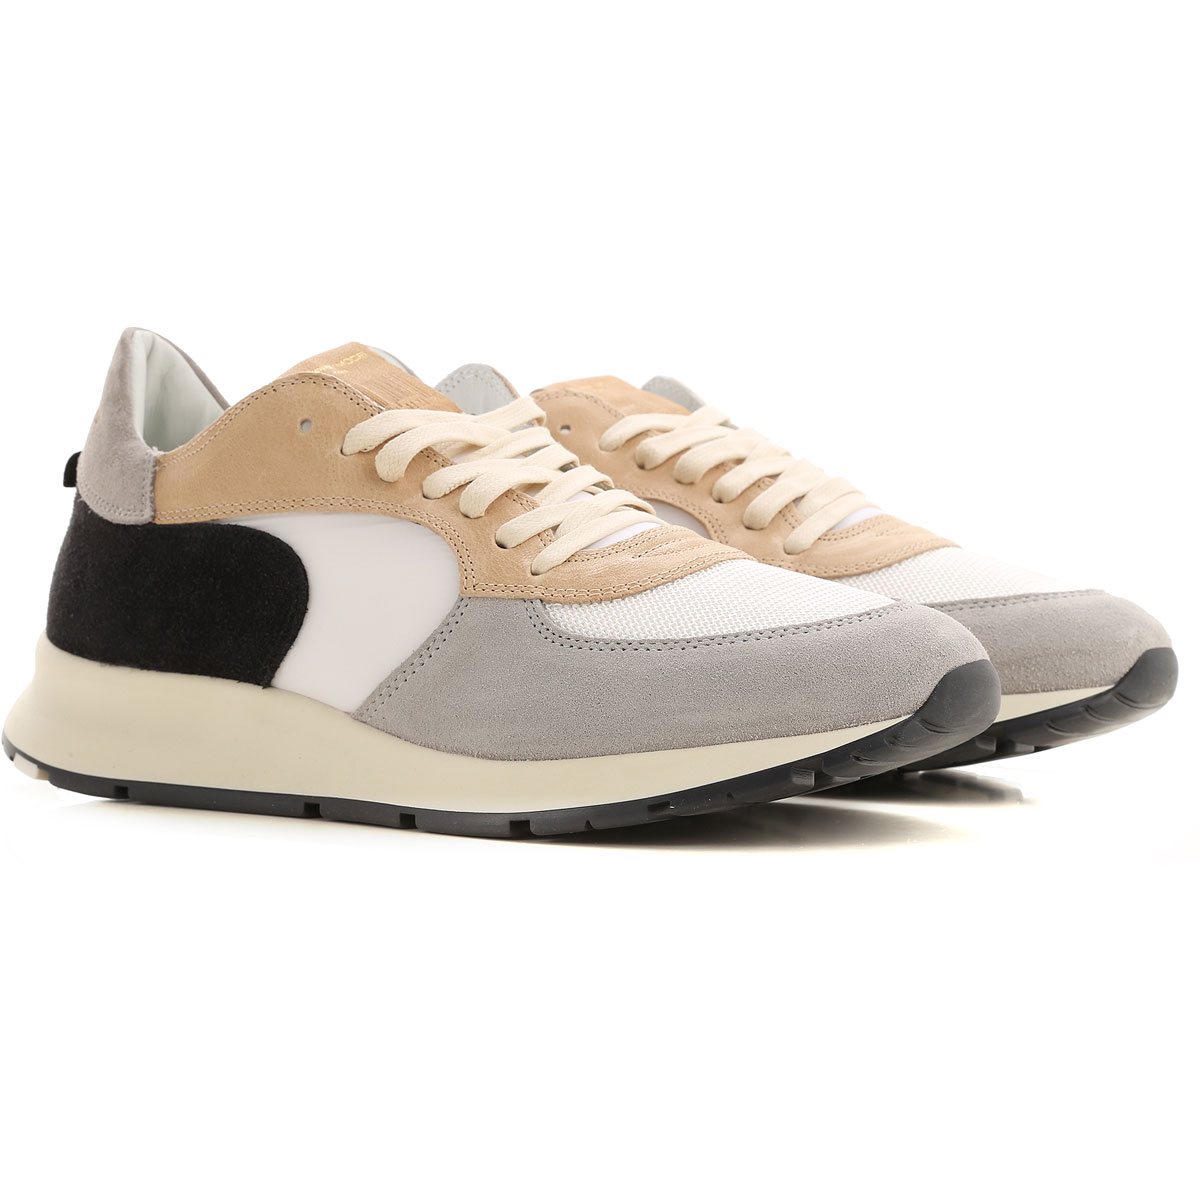 Philippe Model Sneakers for Men On Sale, Beige, Suede leather, 2019, 10 10.5 11.5 7.5 8 9